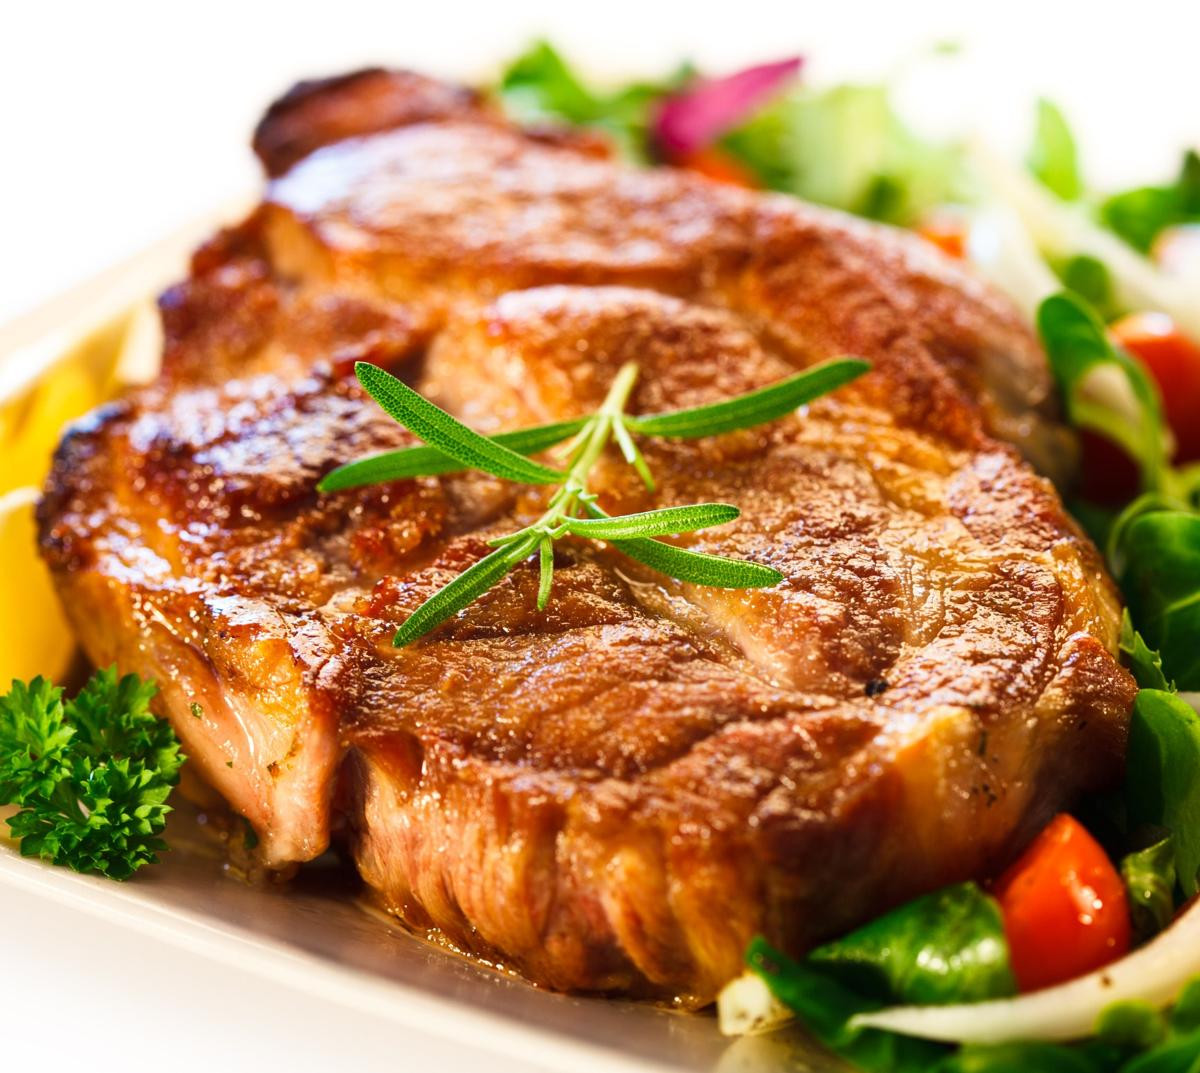 Butterfly Pork Chops  Making Butterfly Pork Chops in the Oven is Now Easier Than